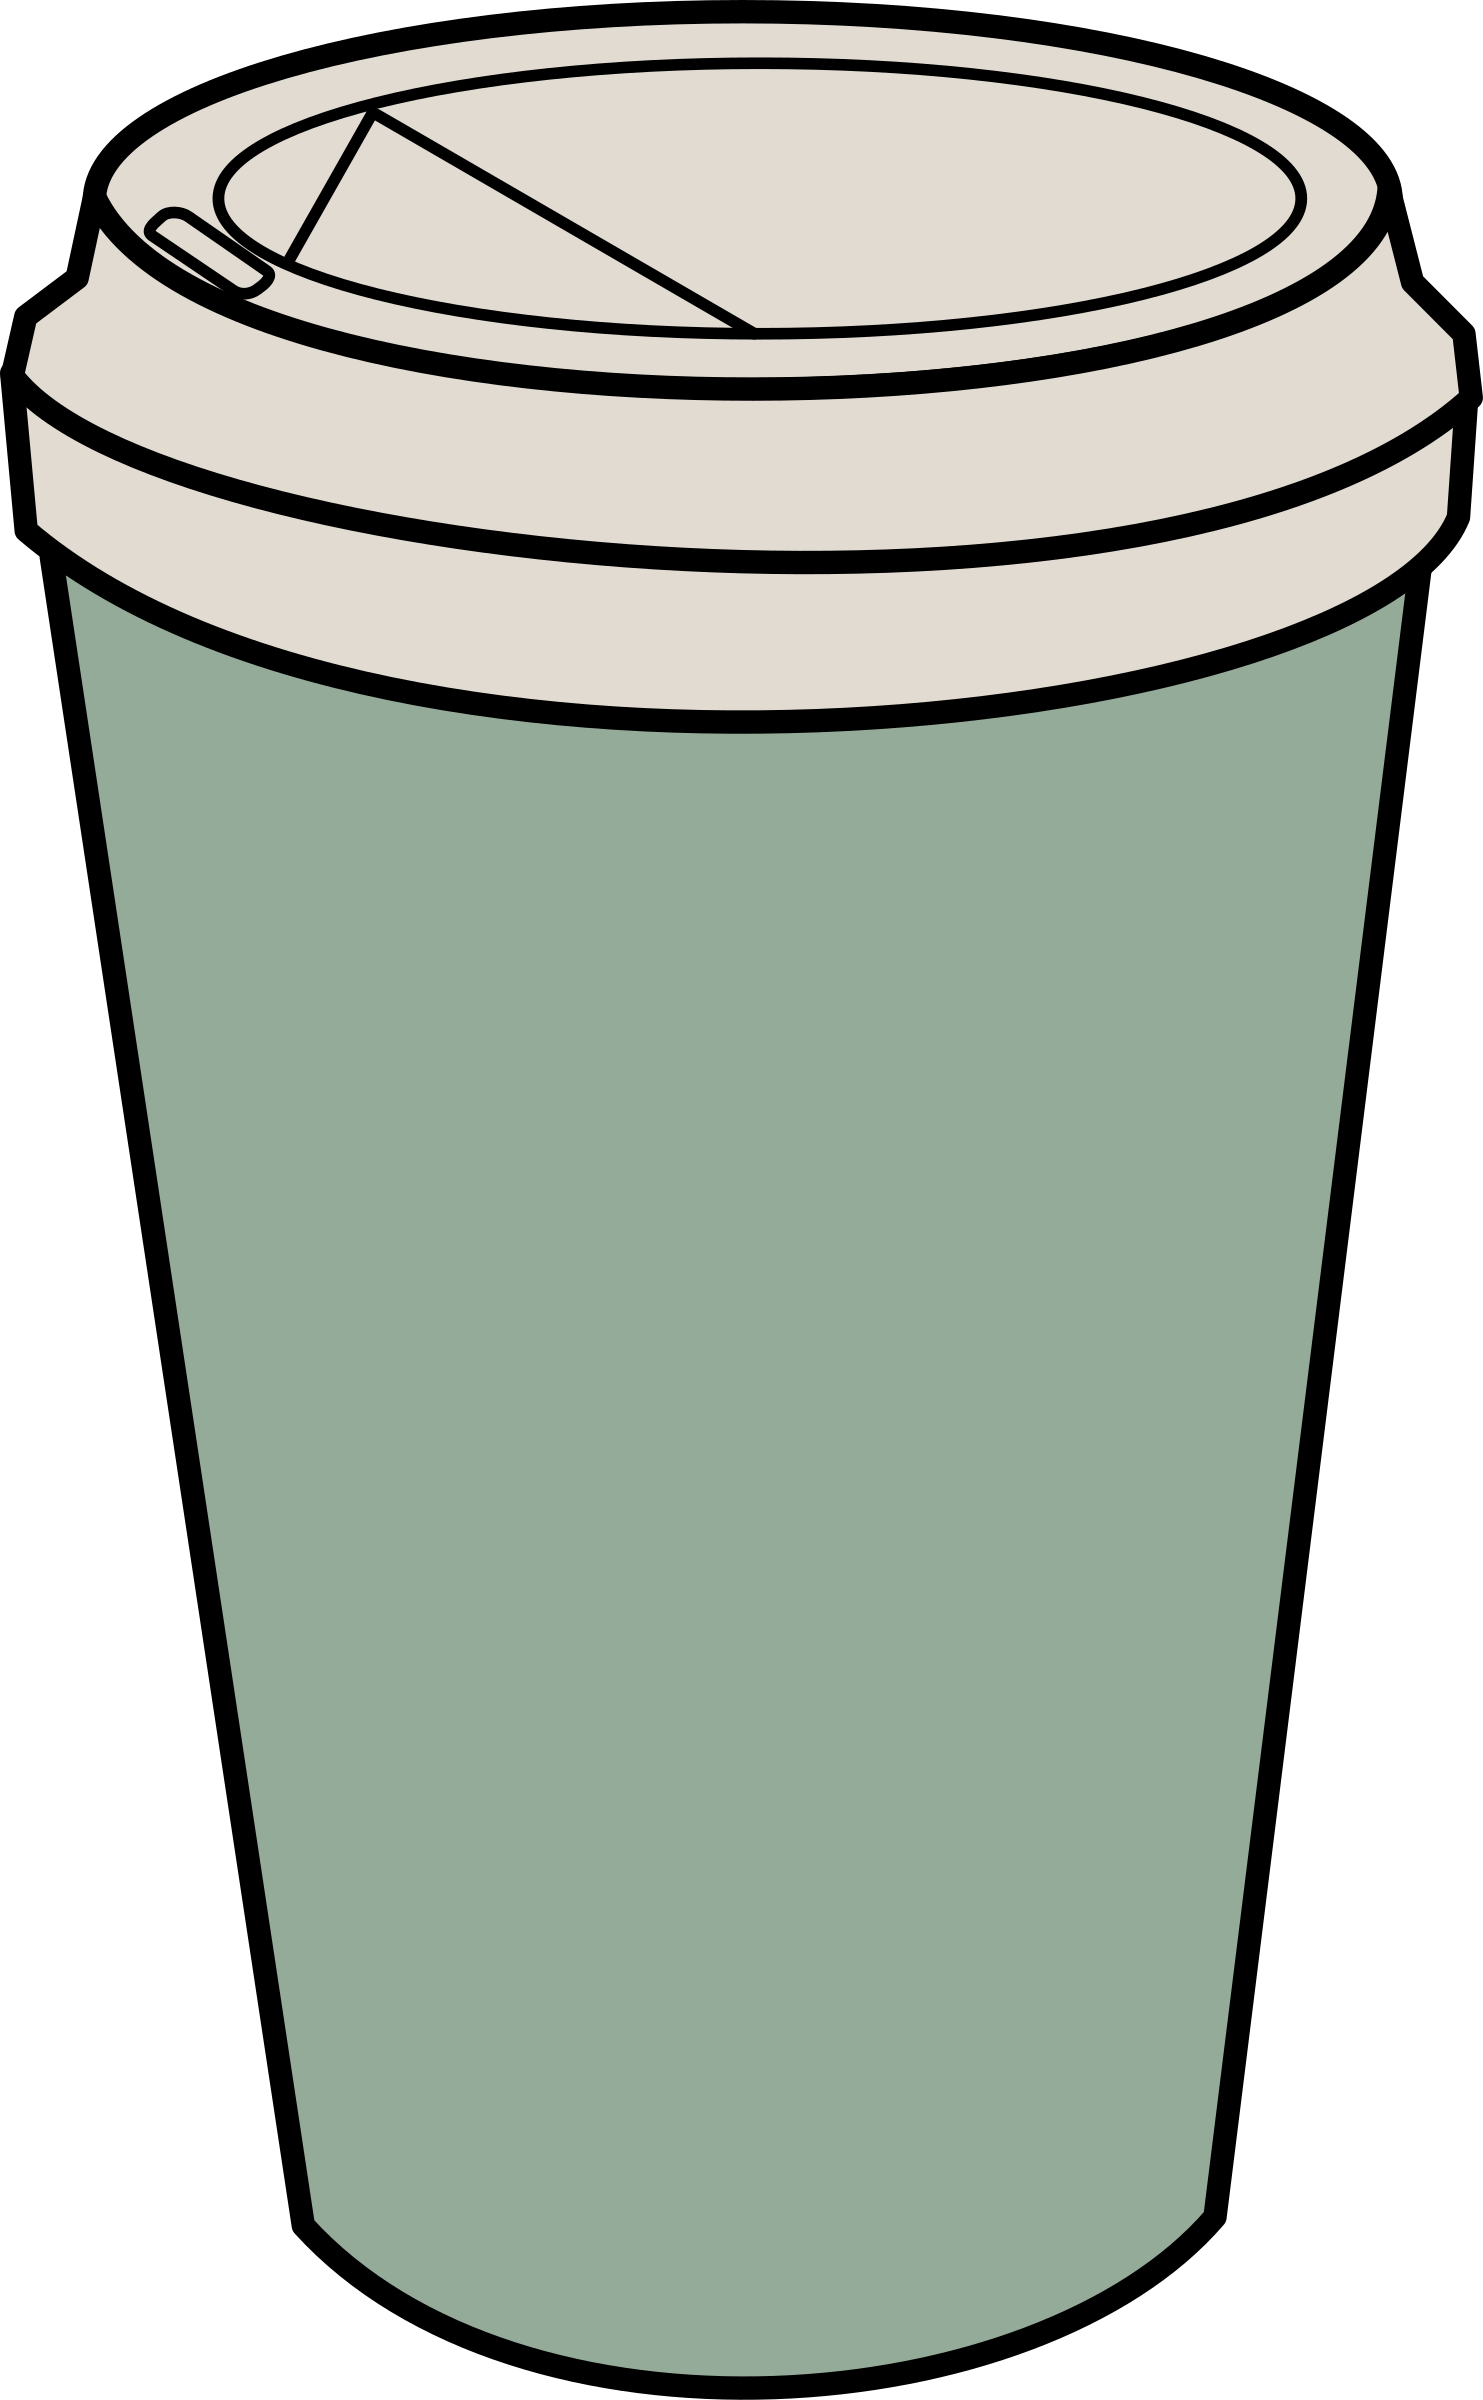 Coffee To Go Clipart & Free Clip Art Images #28130.